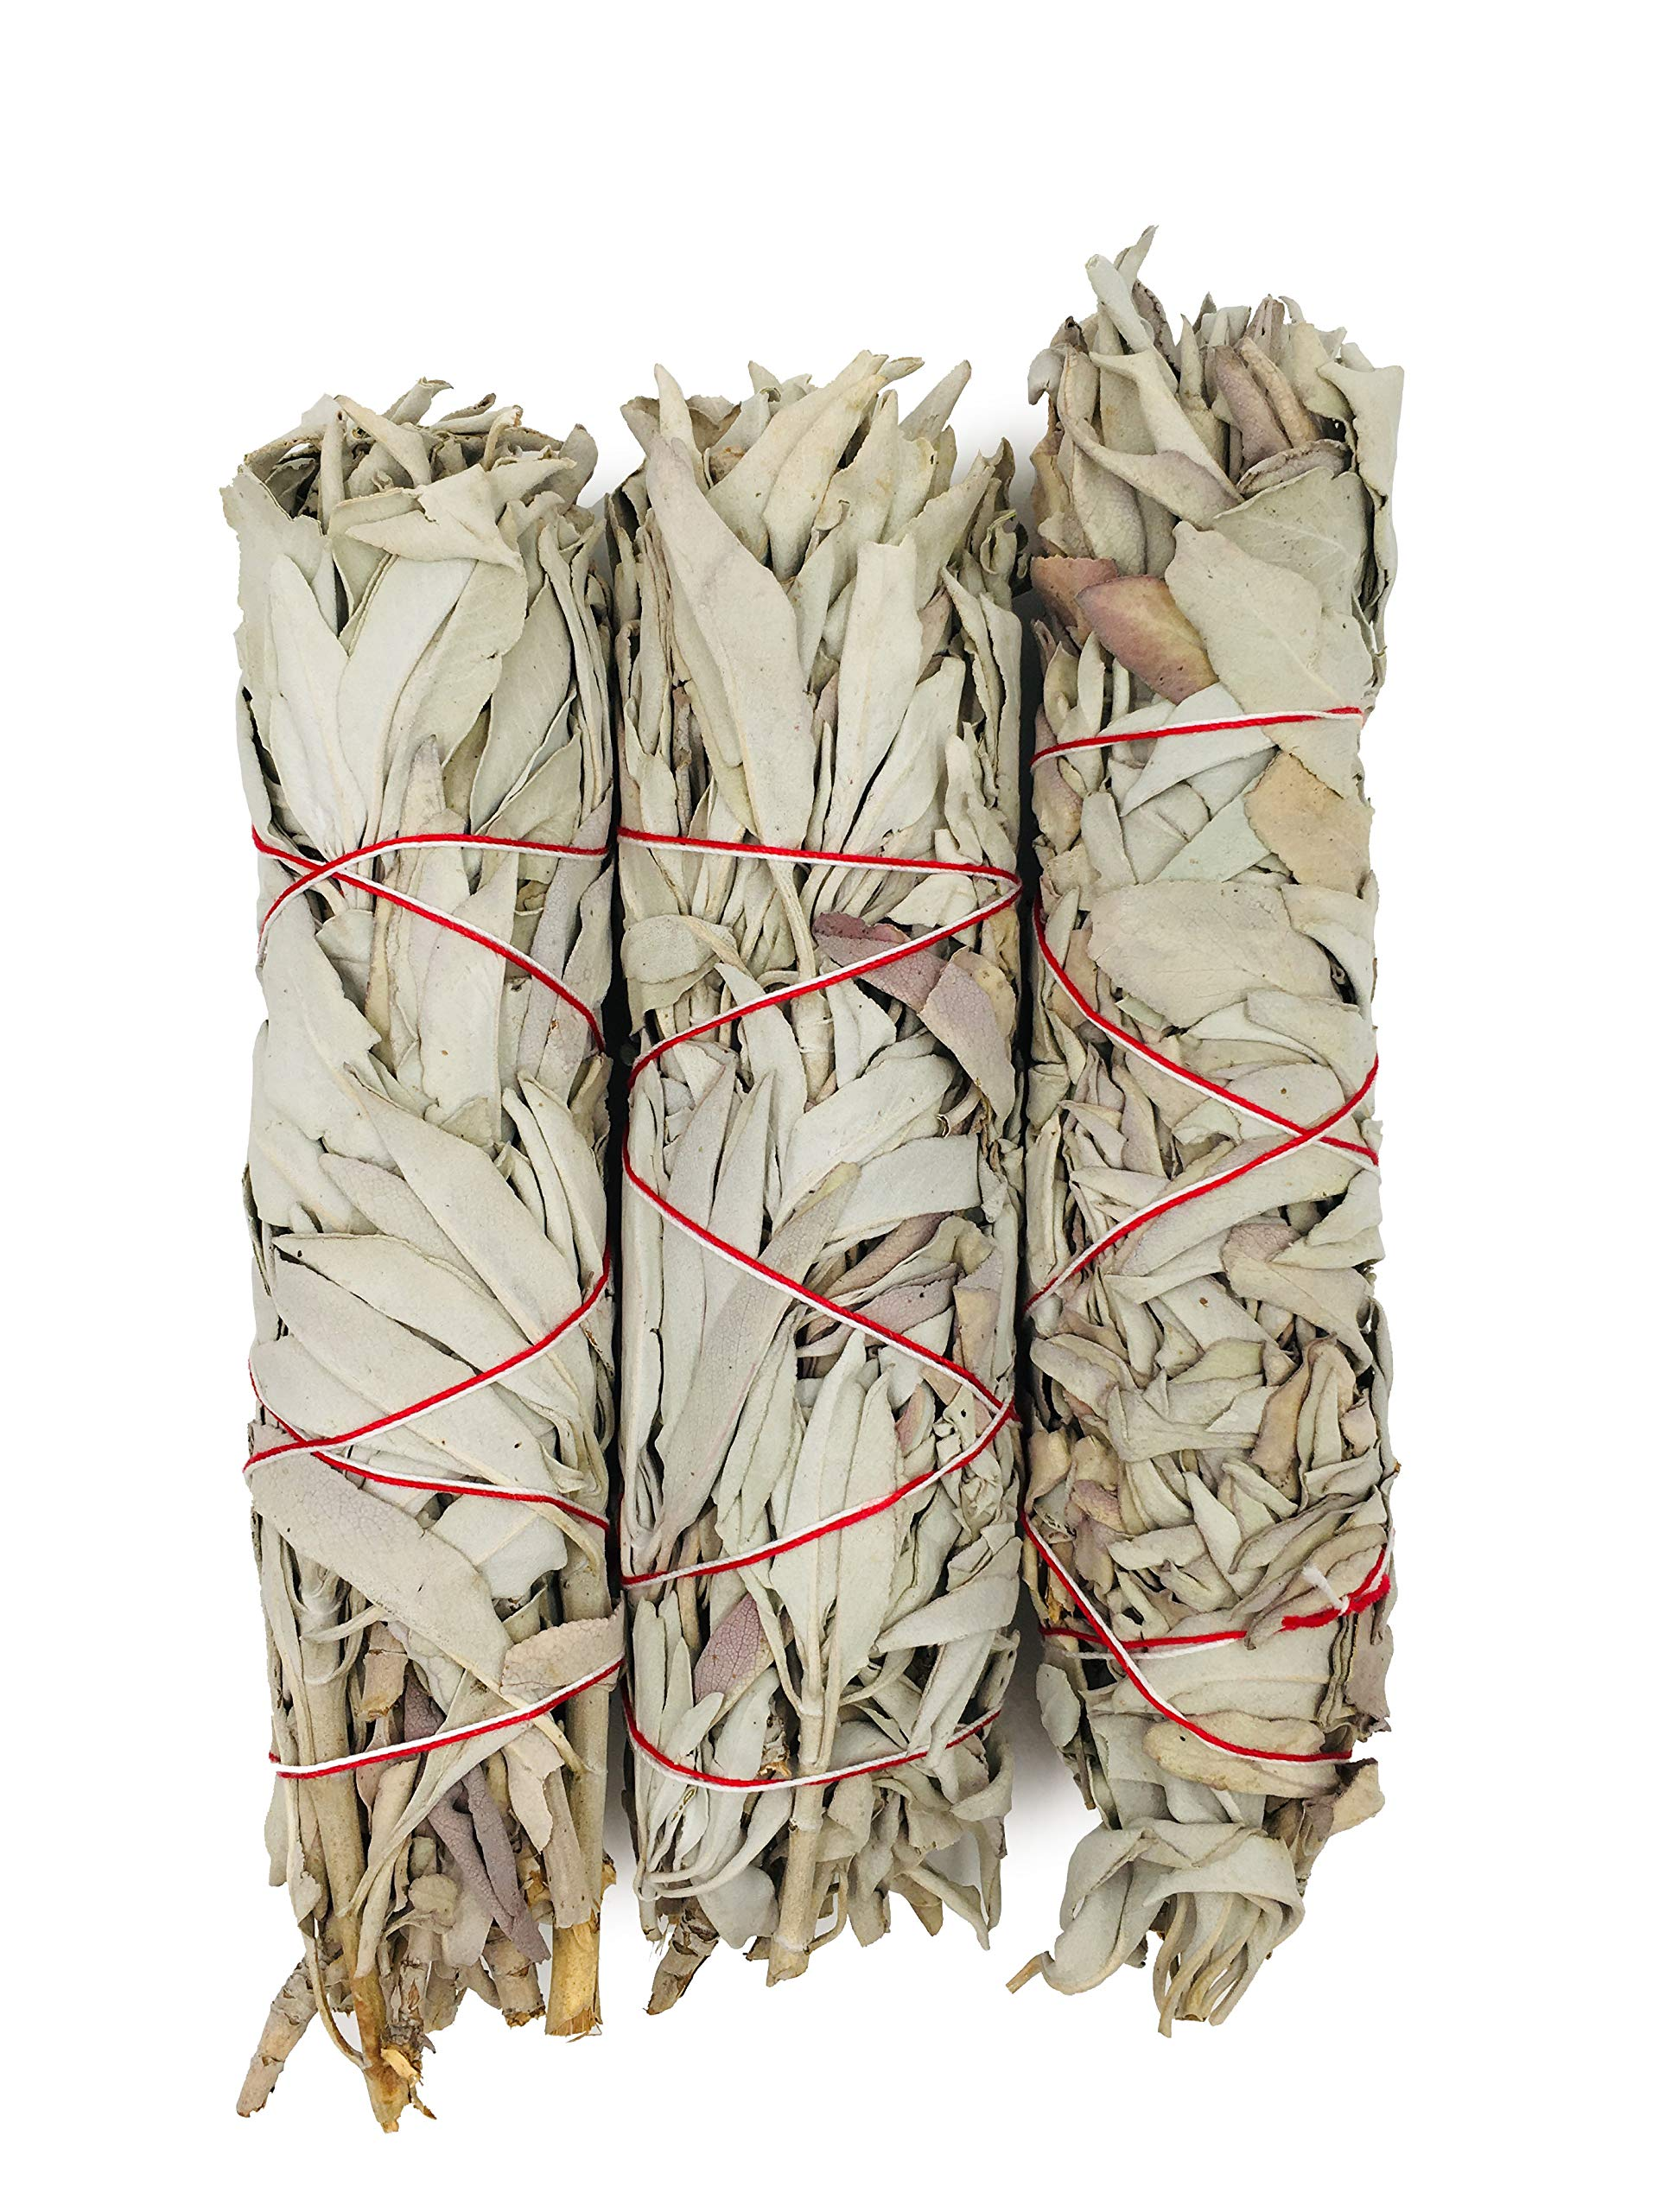 Alternative Imagination Premium, 7 Inch California White Sage Smudge Sticks. by Alternative Imagination (Image #1)